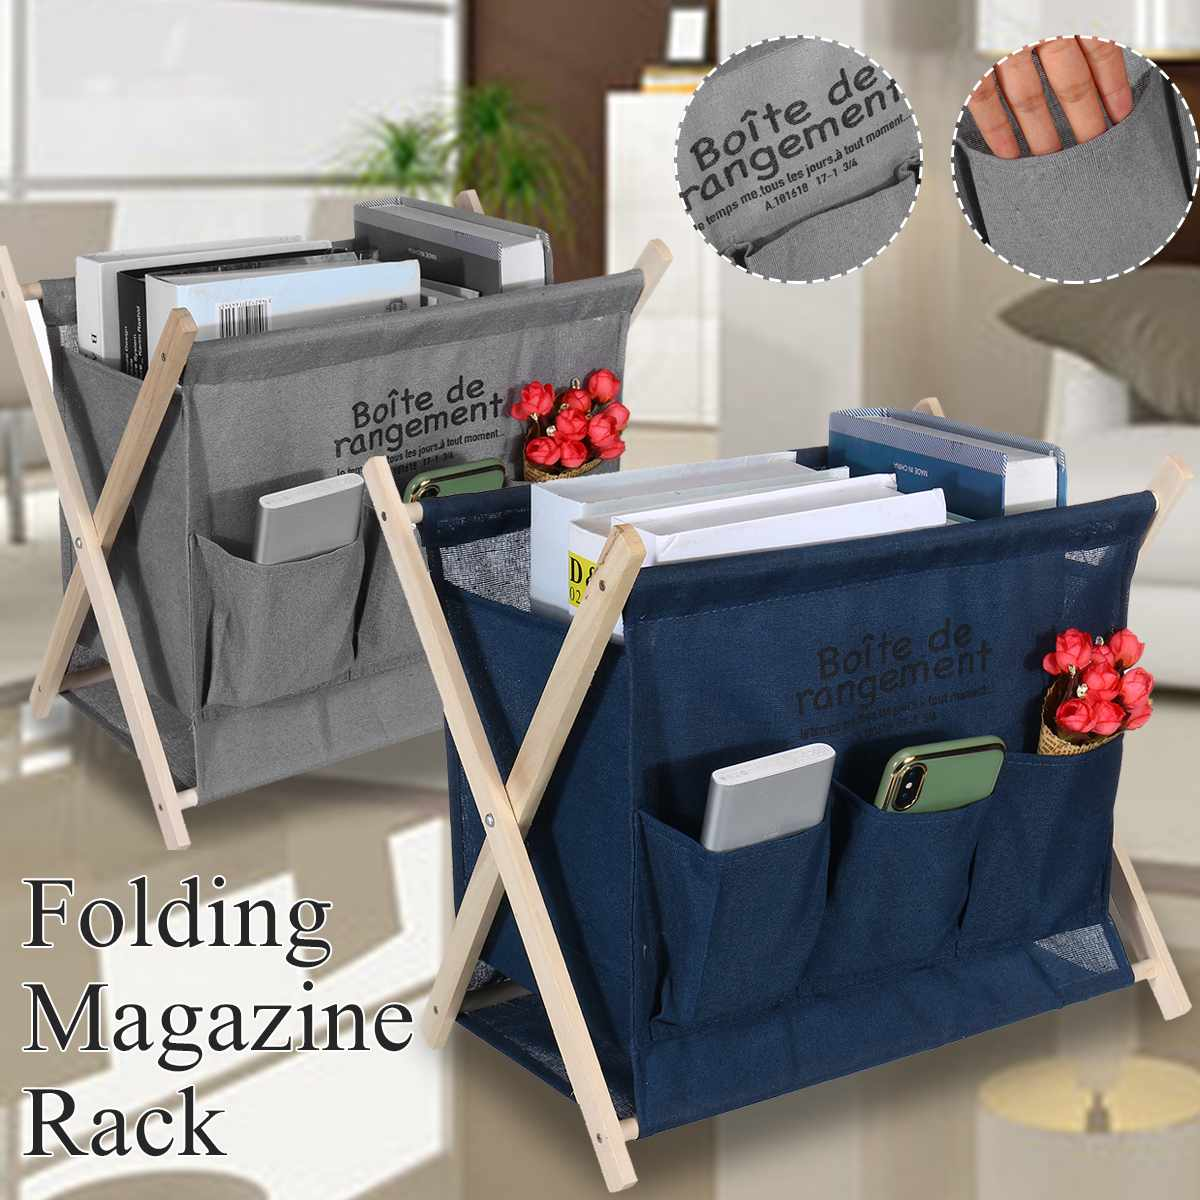 X-shape Foldable Magazine Book Basket Organizer Printed Collapsible 1 Grid Home Laundry Hamper Sorter Laundry Basket